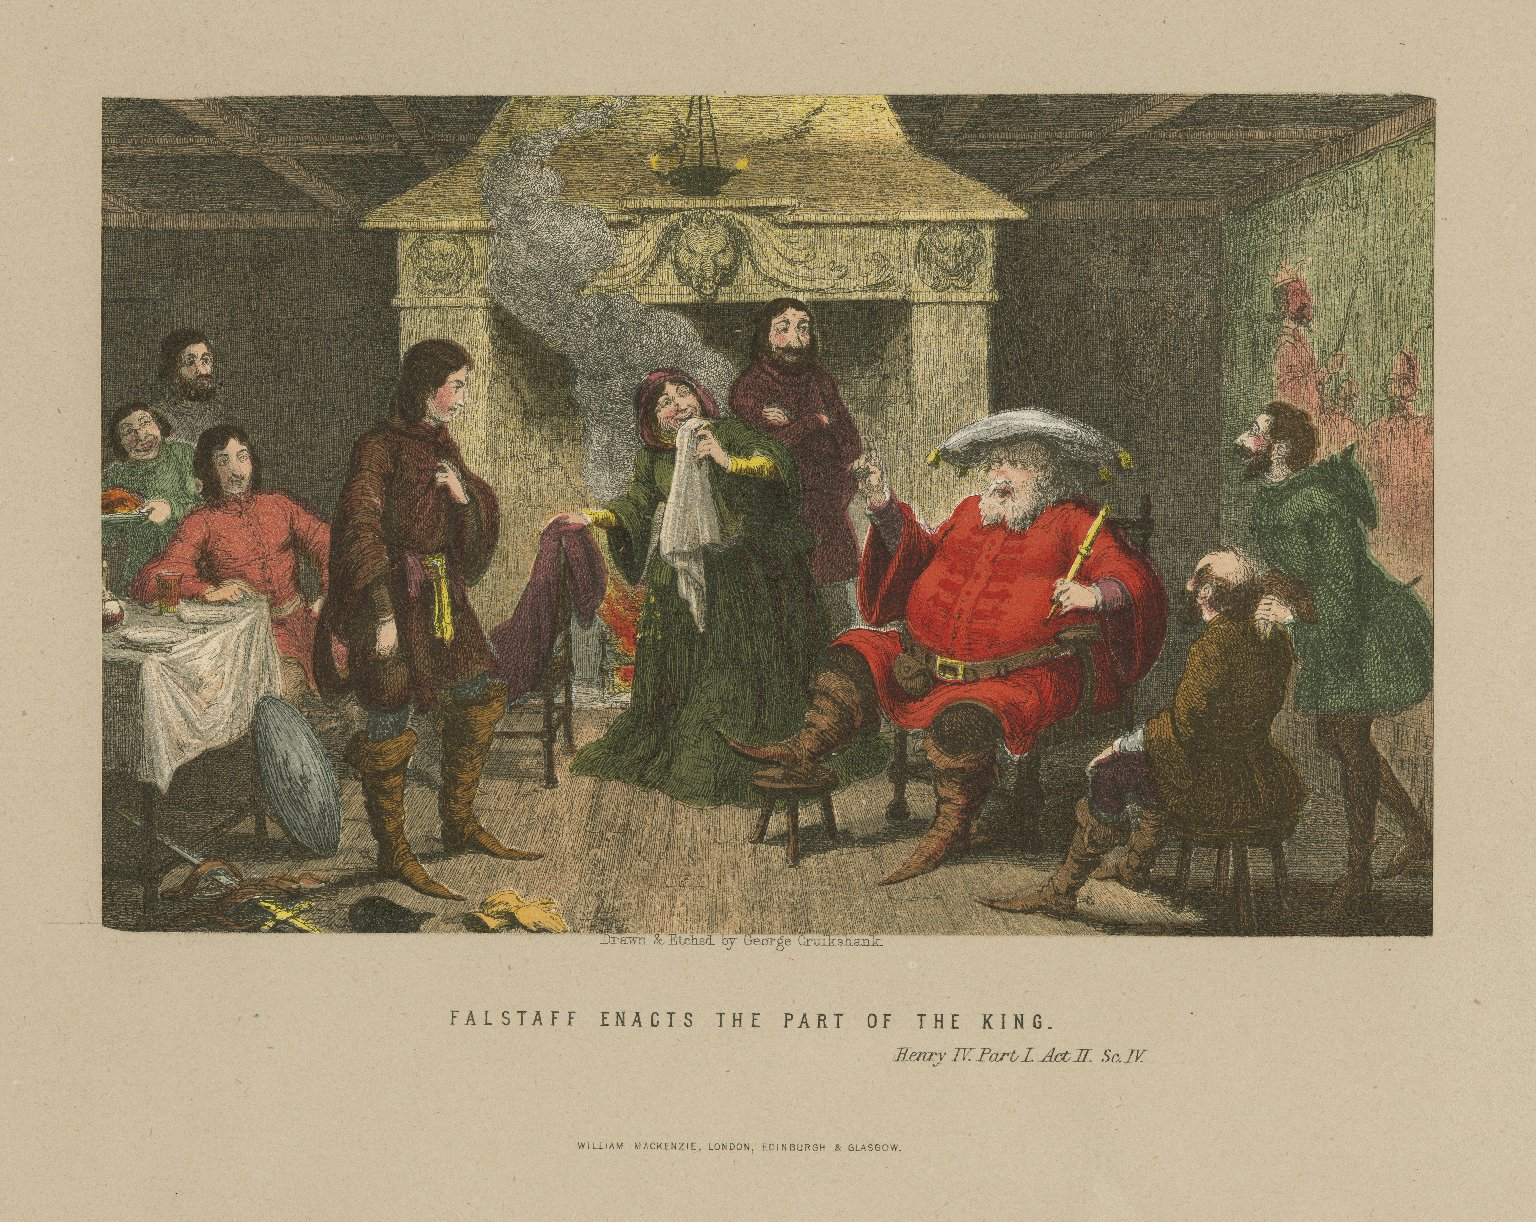 Falstaff enacts the part of the King, Henry IV, part I, act II, sc. IV [graphic] / drawn & etched by George Cruikshank.